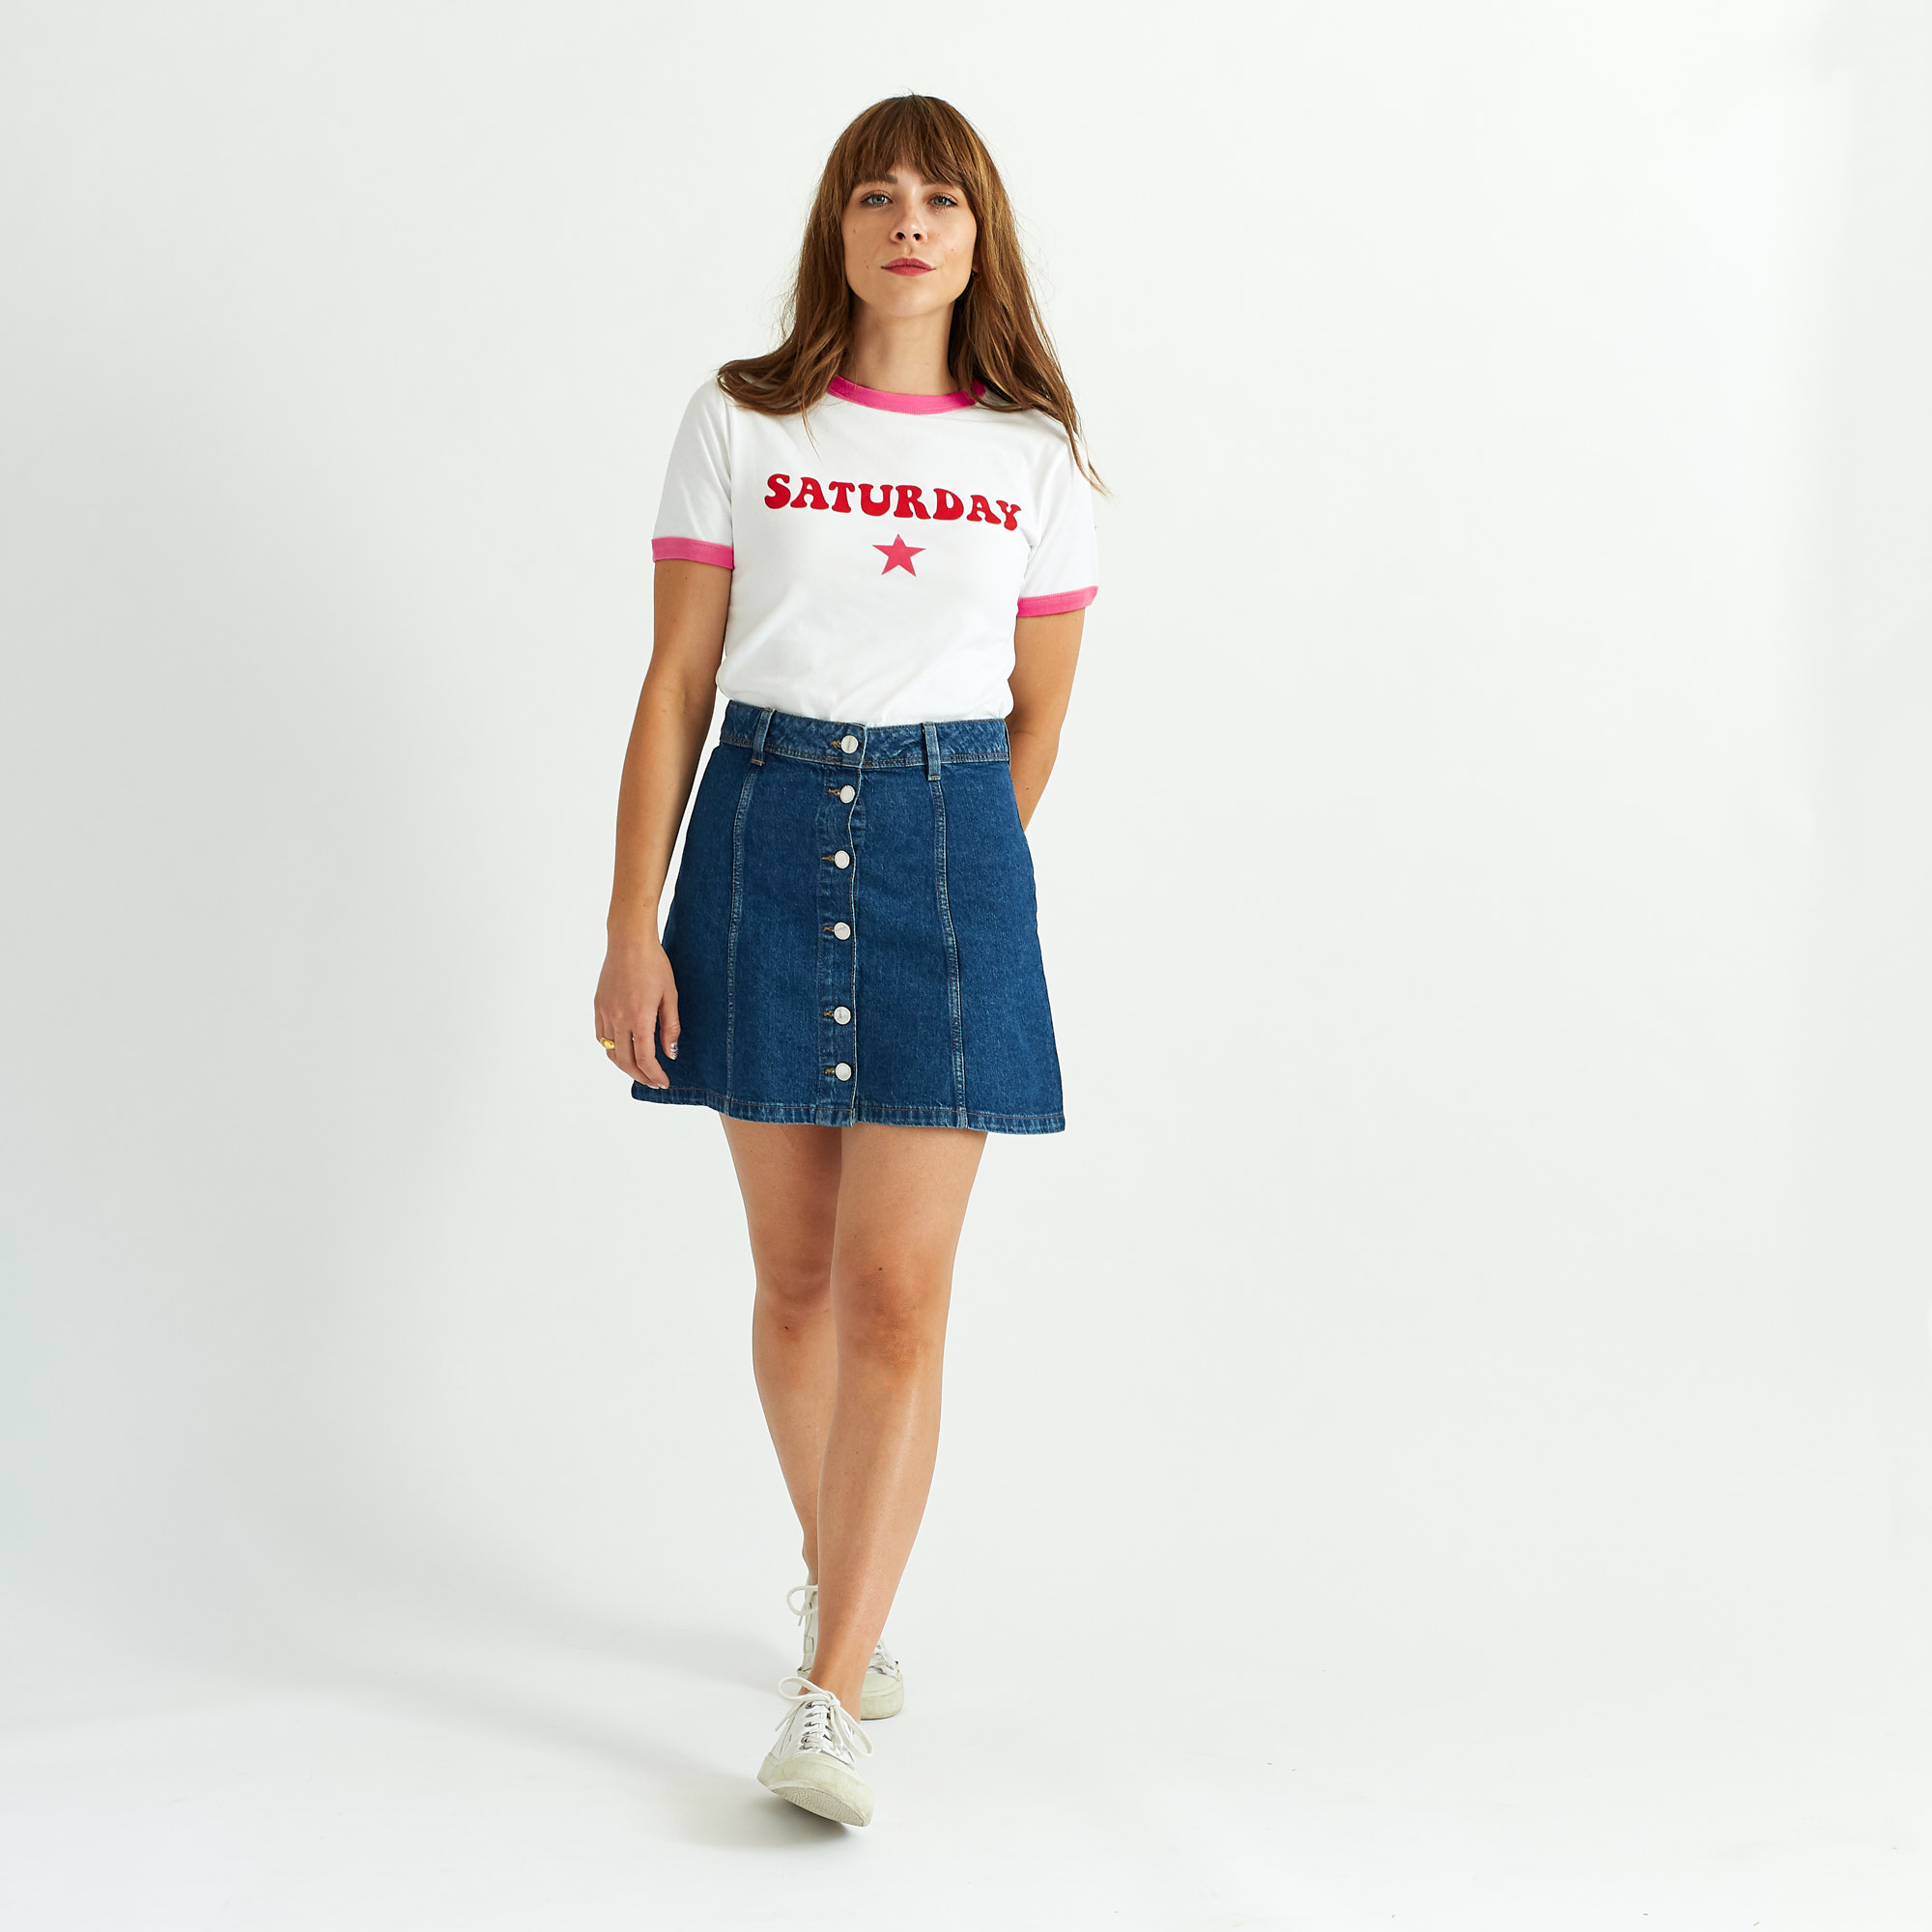 GRAPHIC T-SHIRT STYLING